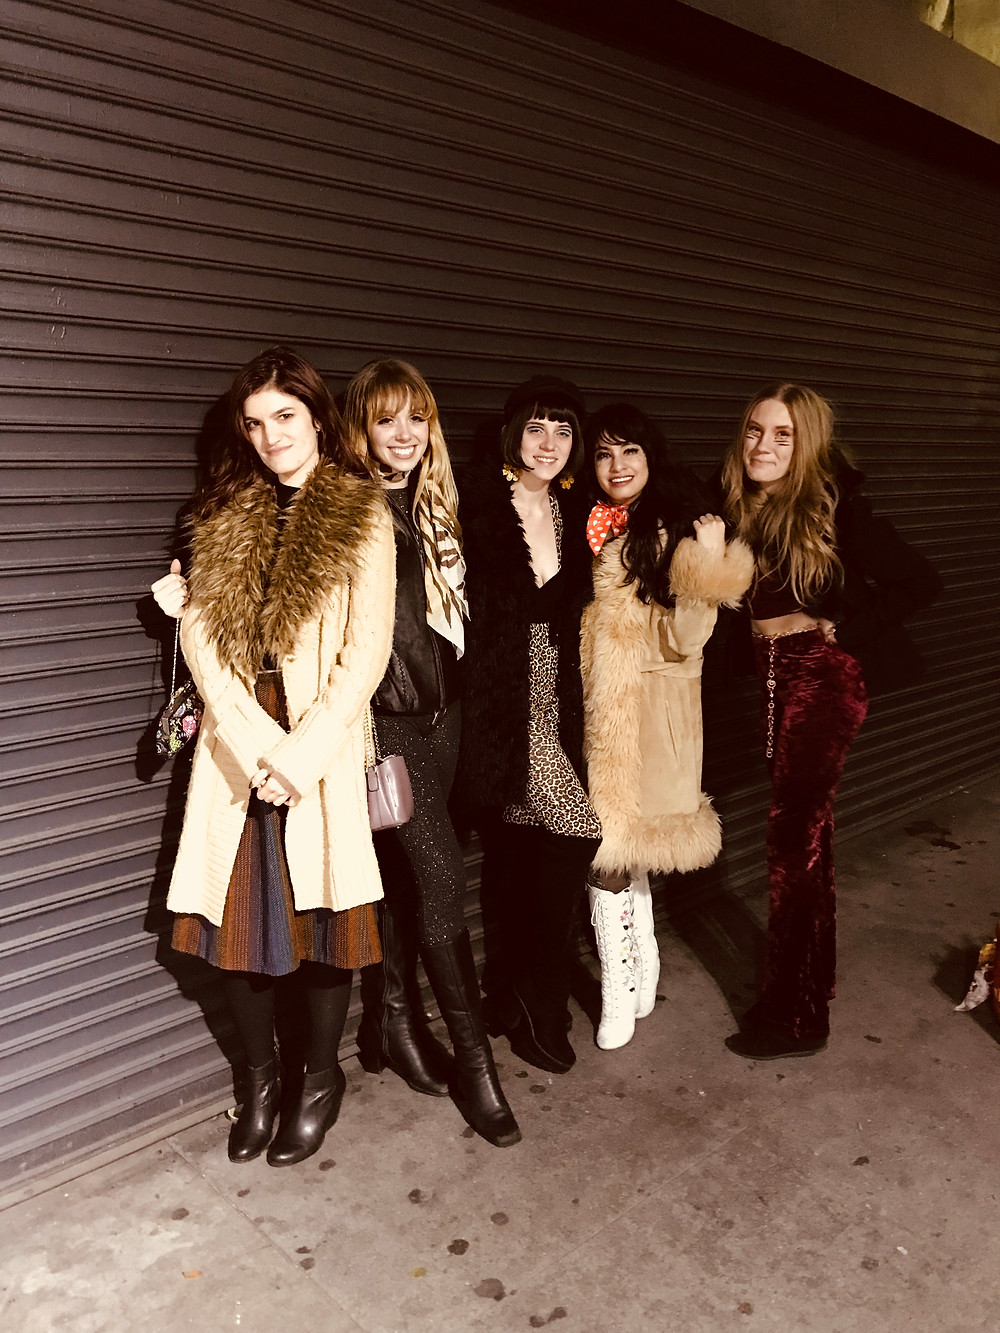 Left to right: Amanda, me, Olivia, Breezy, and Stardust outside of the Monty in LA